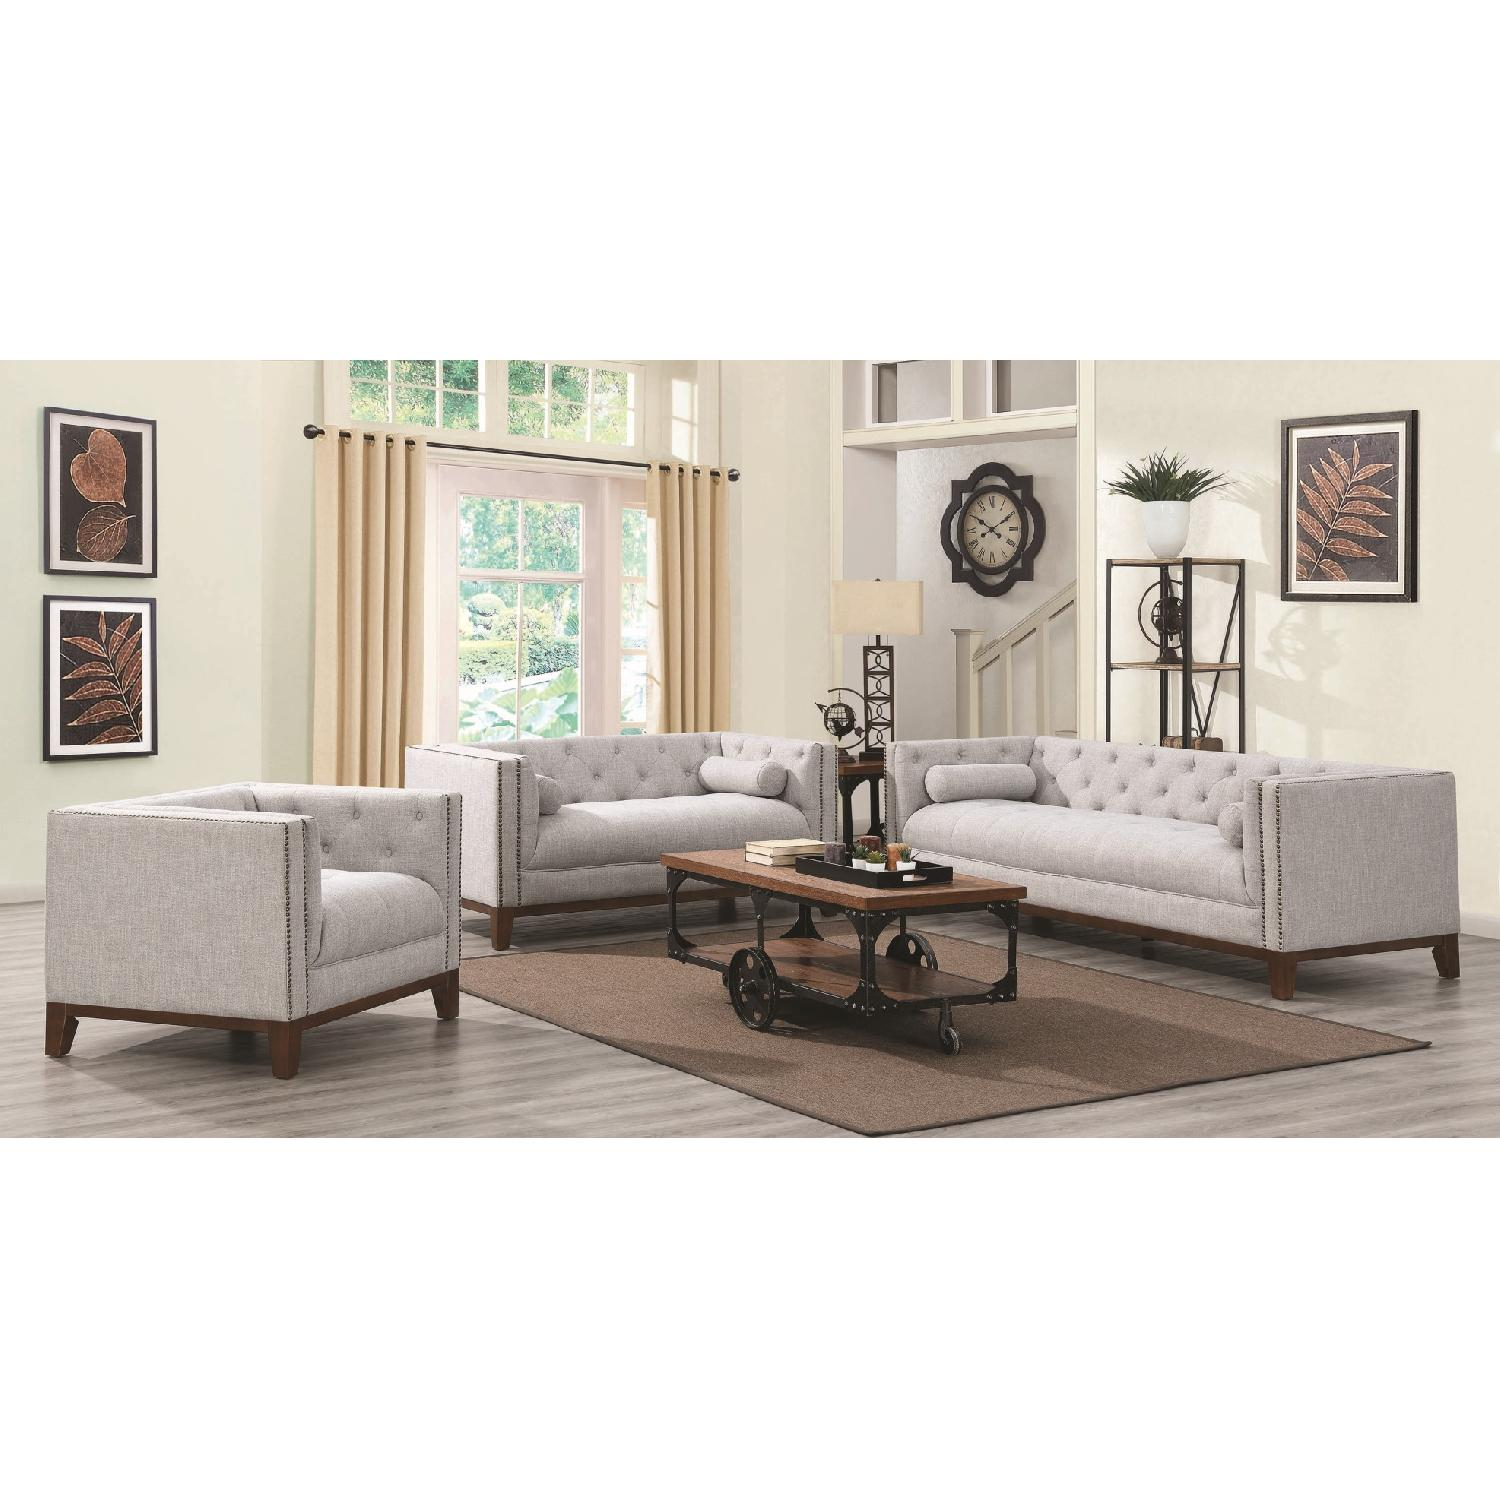 Modern Style Armchair w/ Tufted Buttons & Nailhead Accent - image-4